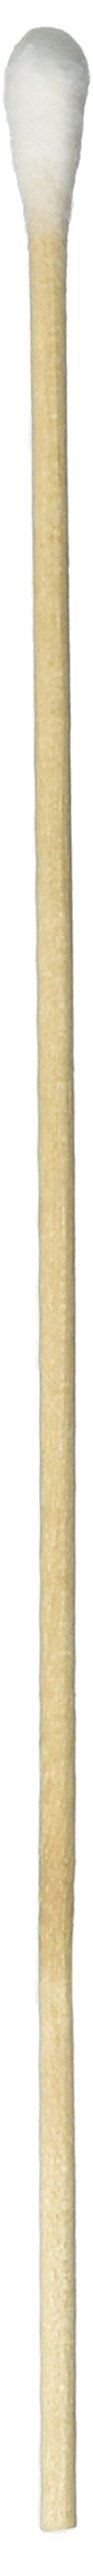 Premiere 95-8702 Wood Cotton Tipped Applicator, Non-Sterile, 6'' Wood Stem (Case of 10000)